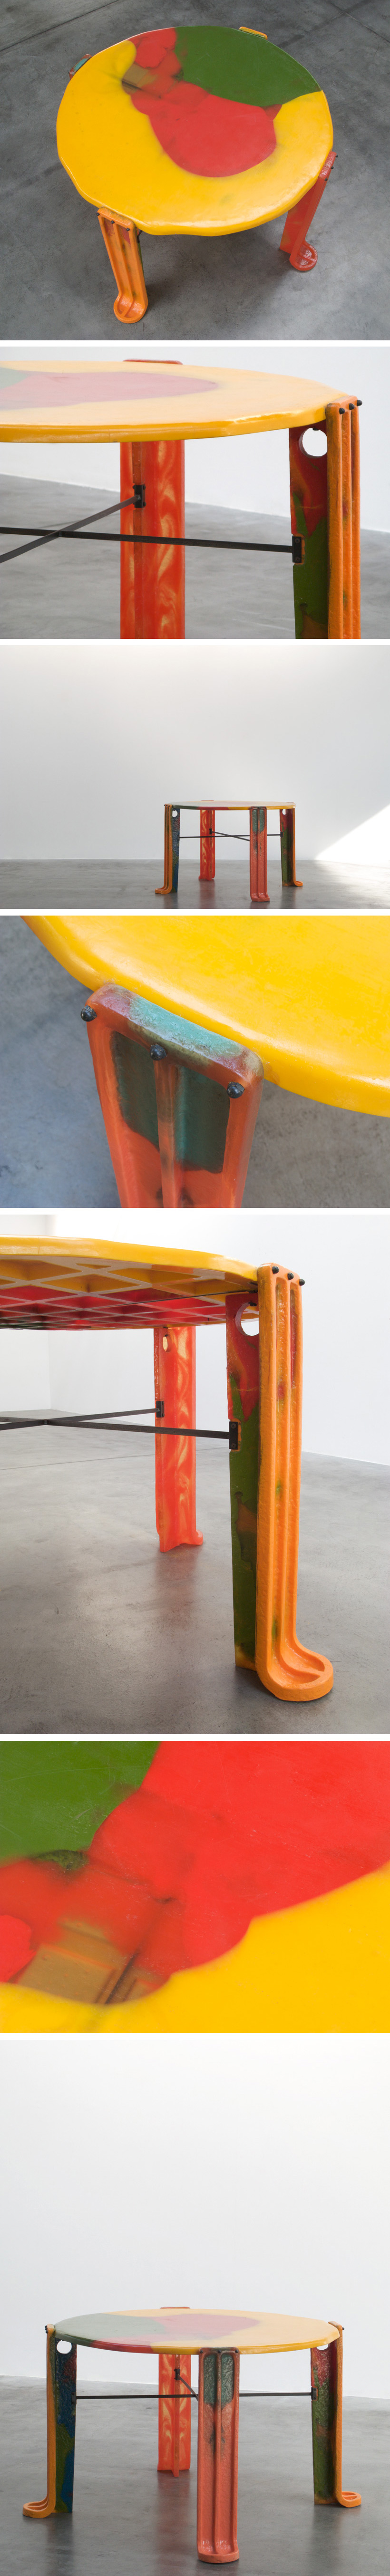 Gaetano Pesce dinette table from the TBWA Chiat Day New York Large